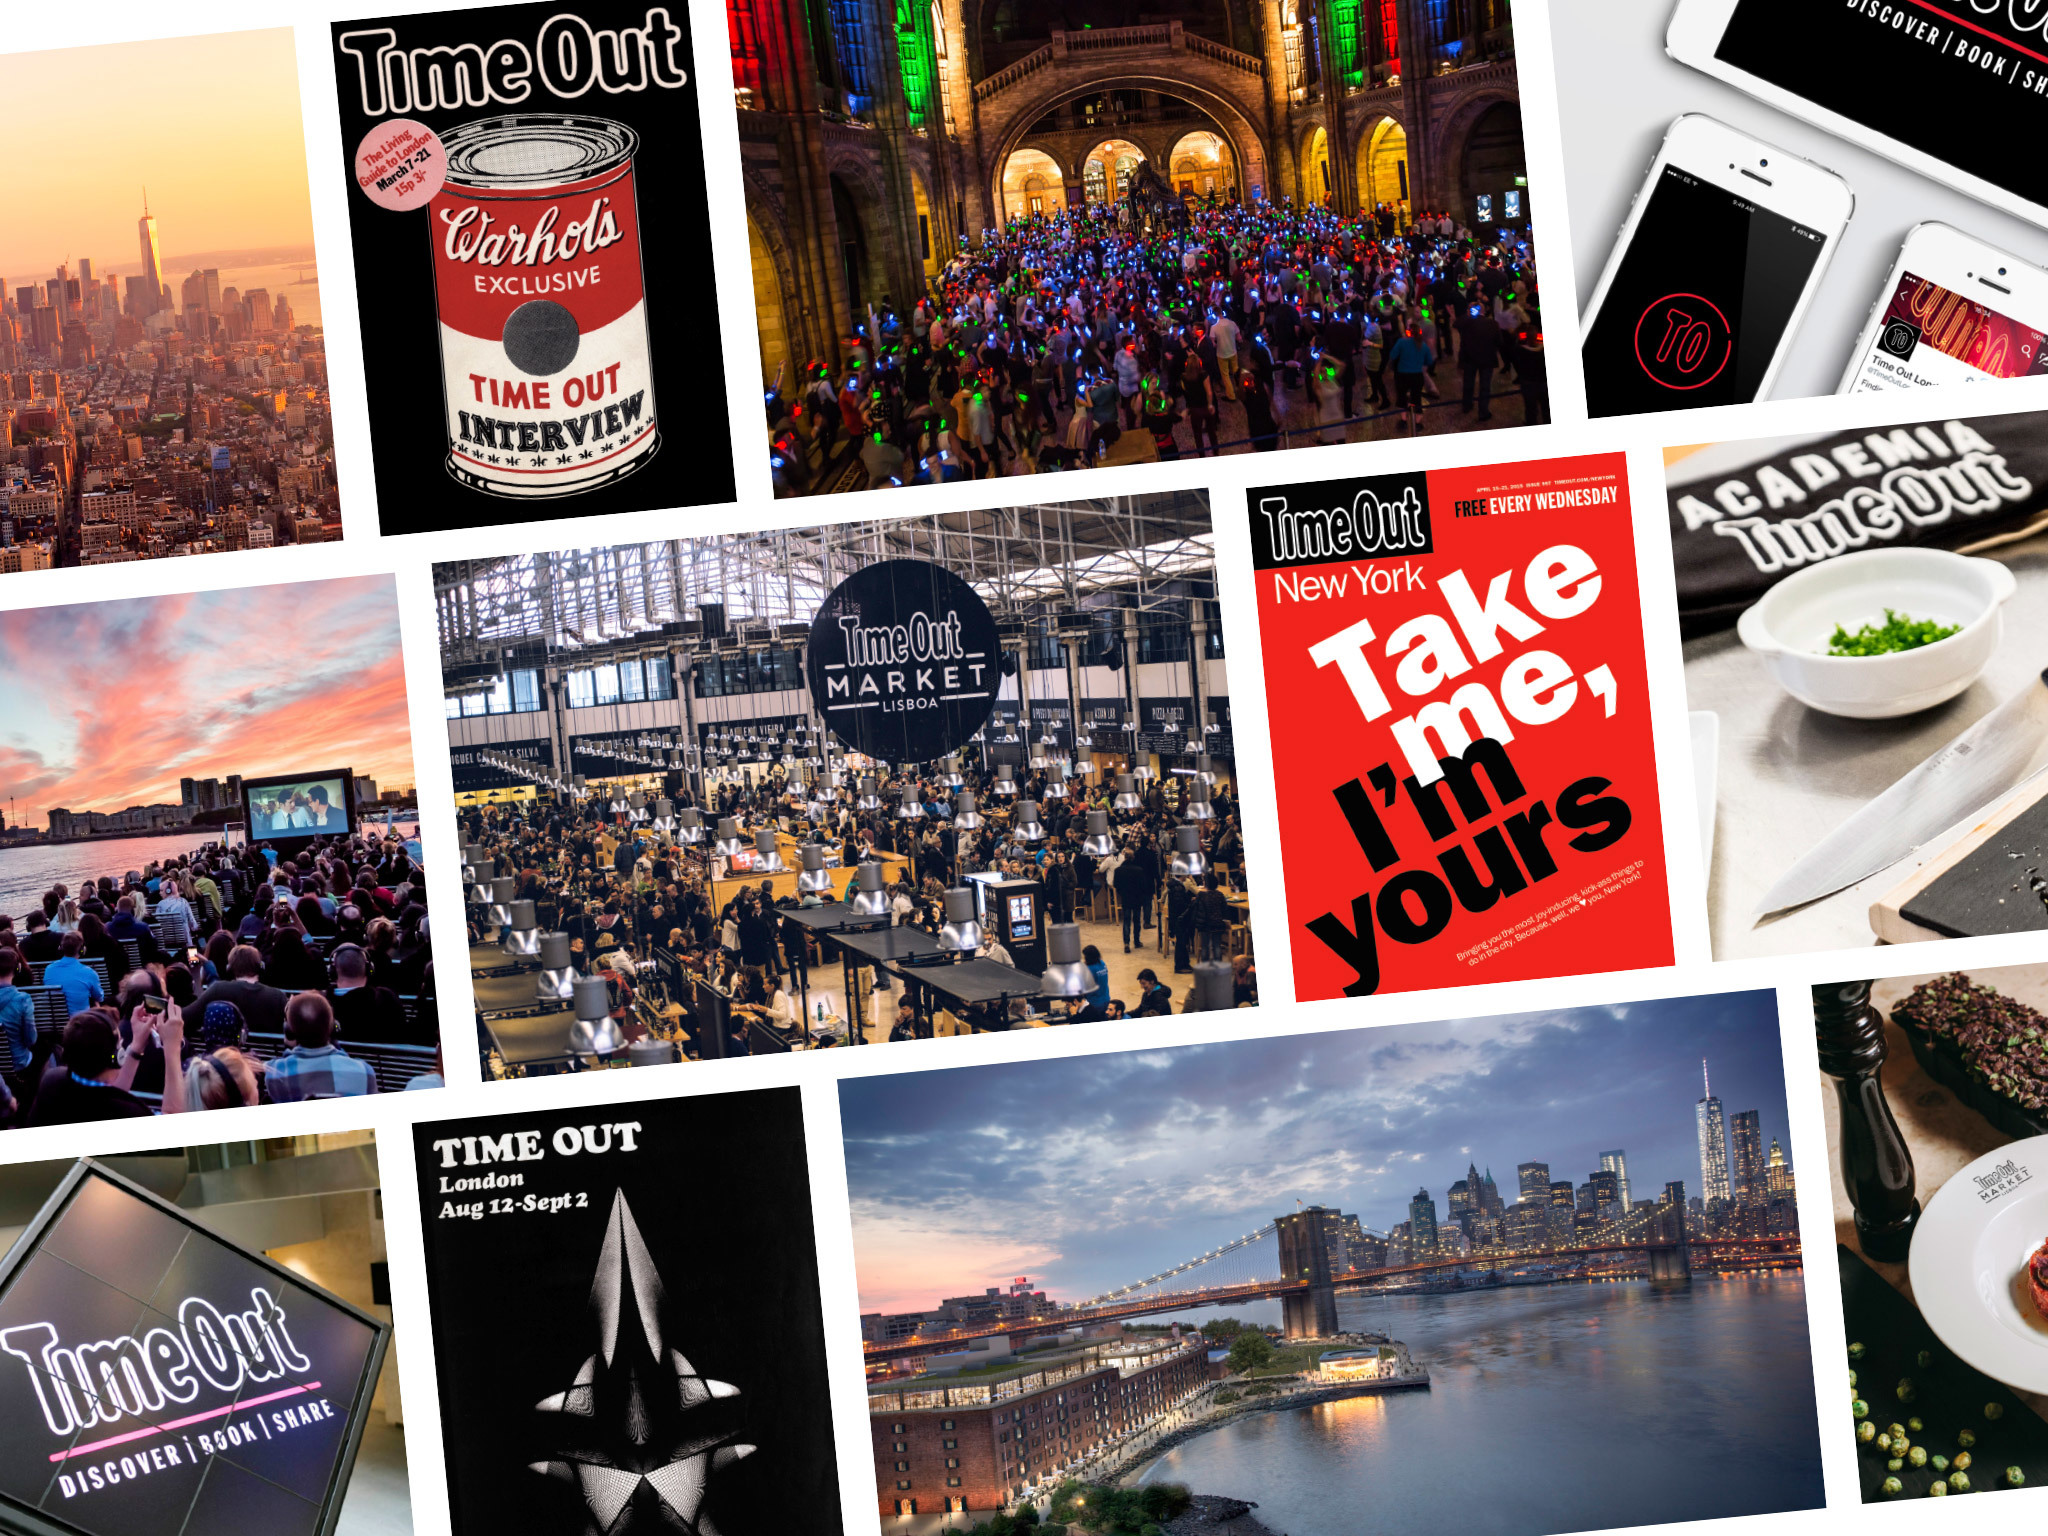 History of Time Out, the global media and entertainment brand that inspires people to make the most of the city